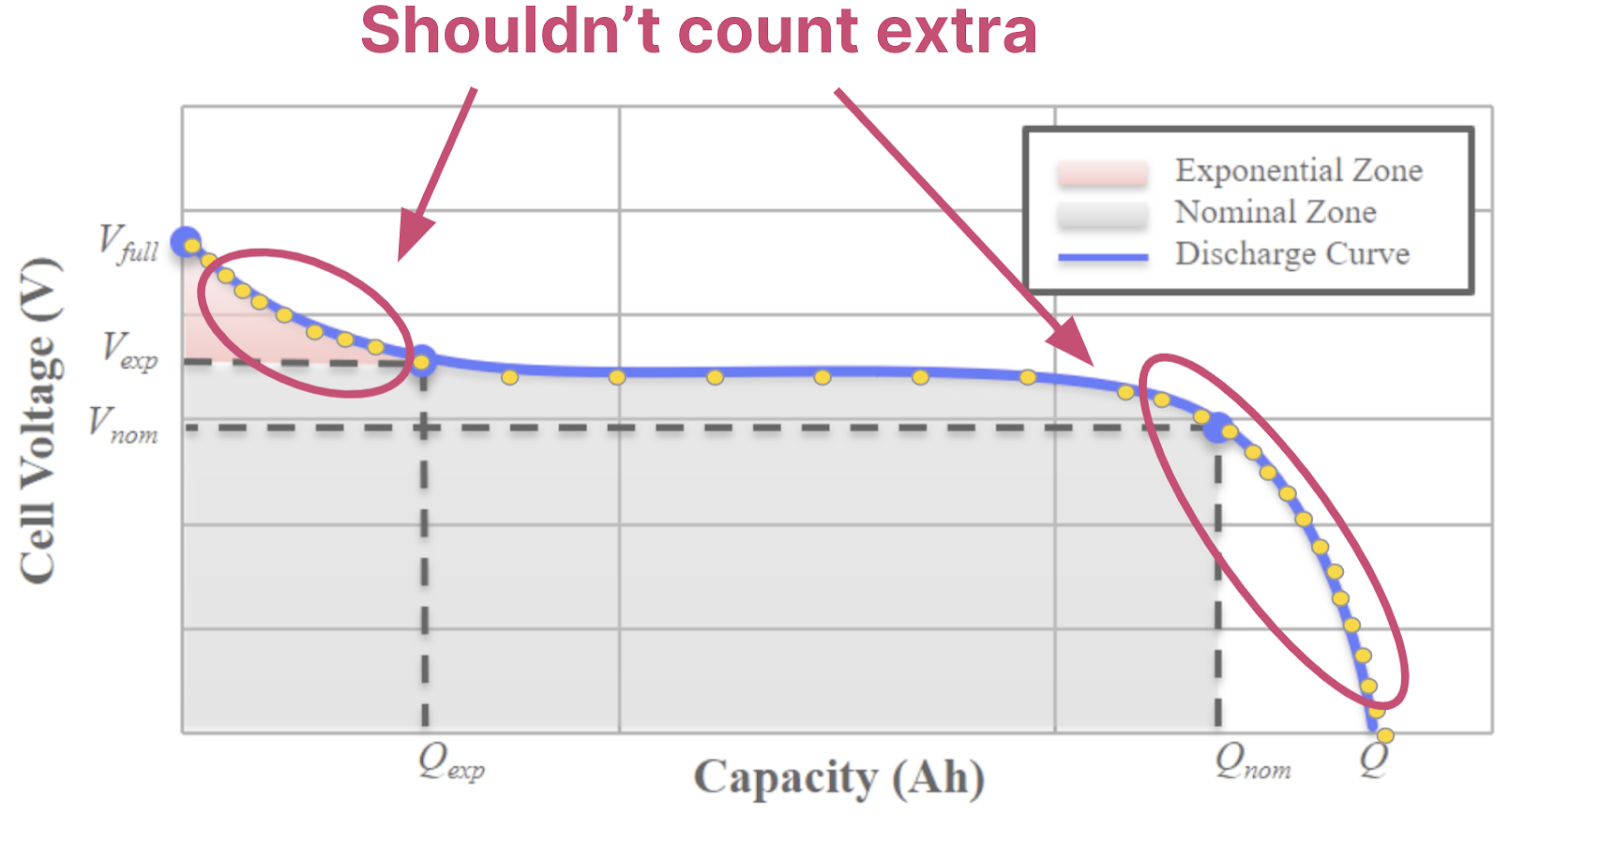 """The same battery curve again, with the same data points superimposed and the """"interesting bits"""" circled again, however this time noting that the """"interesting bits"""" shouldn't count extra even though there are more data points included in the circled area."""